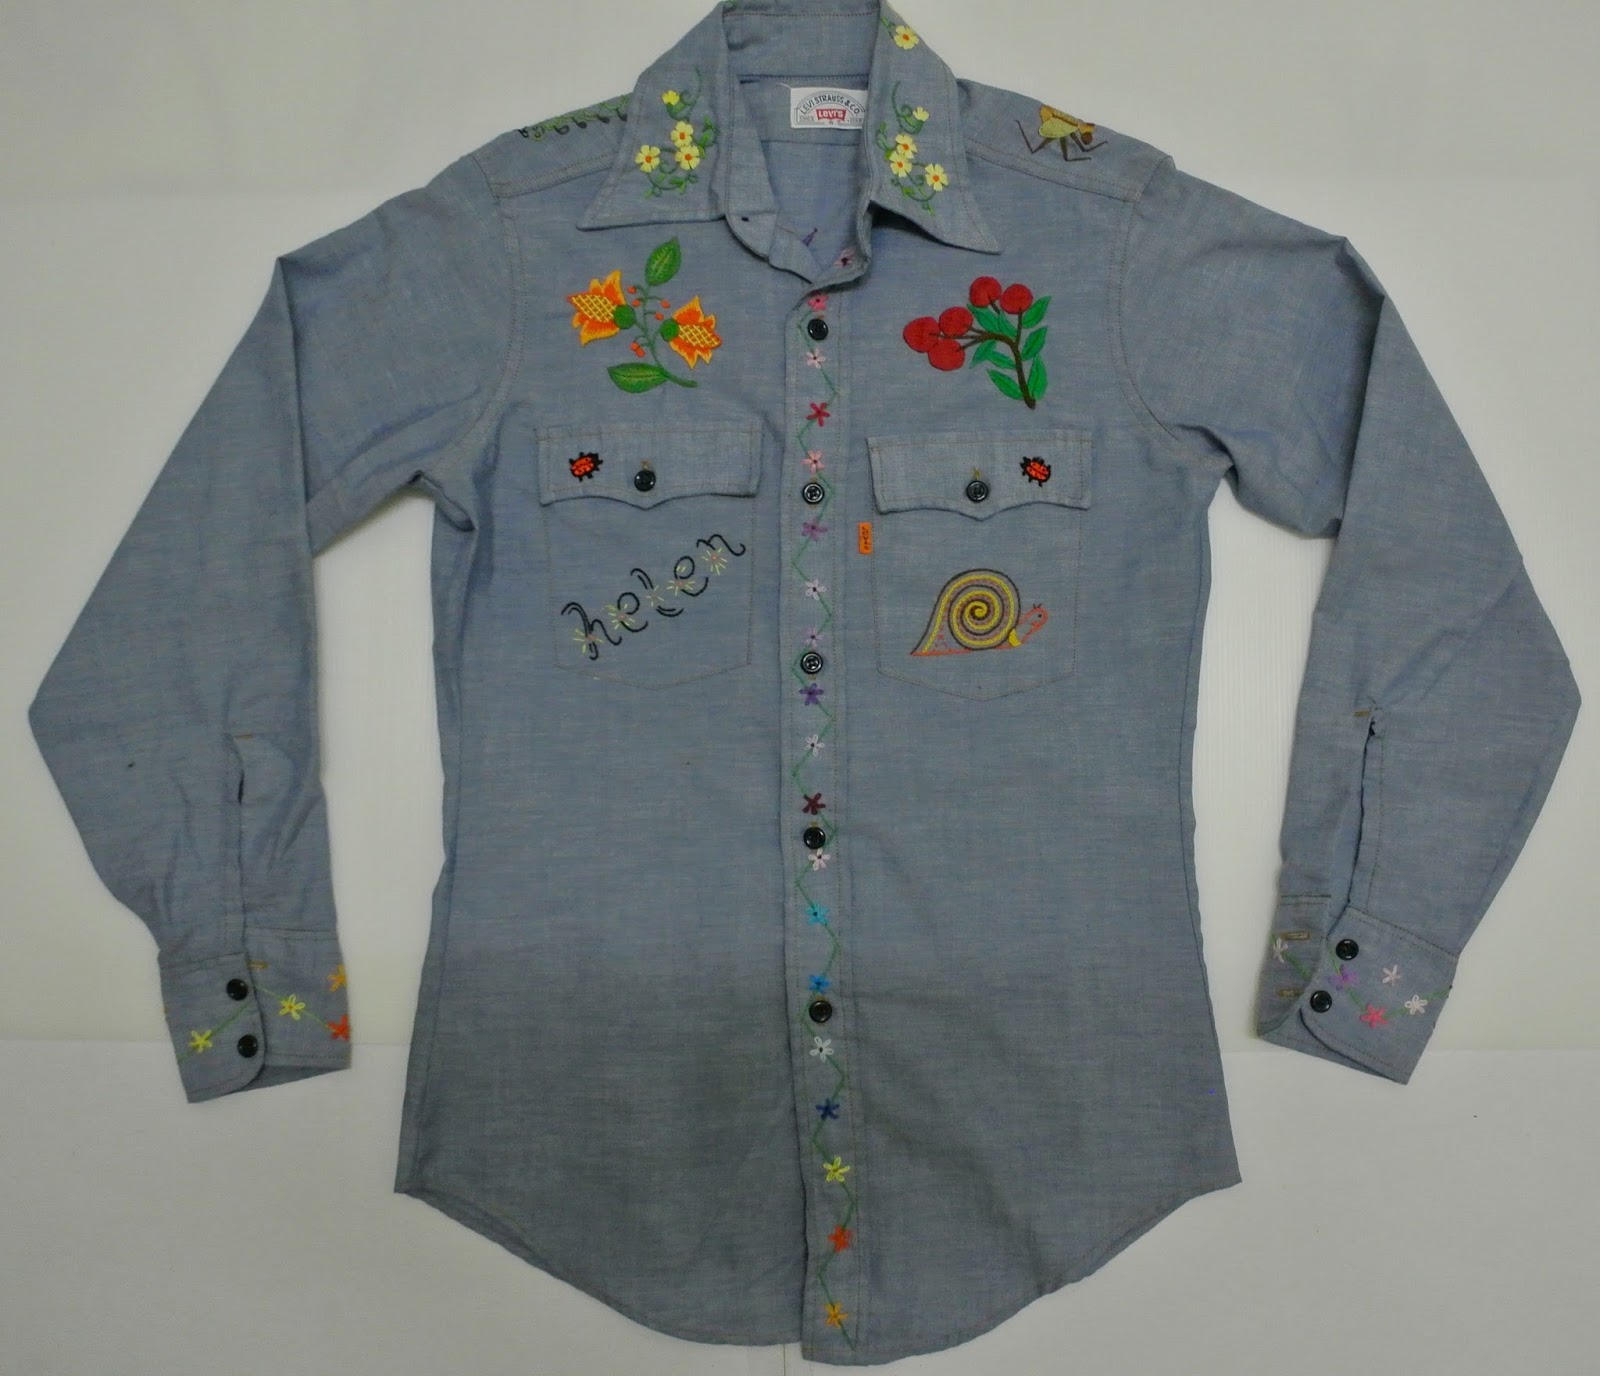 Indieclothingitems vintage levis chambray sulam shirt sold for 5 11 job shirt embroidery